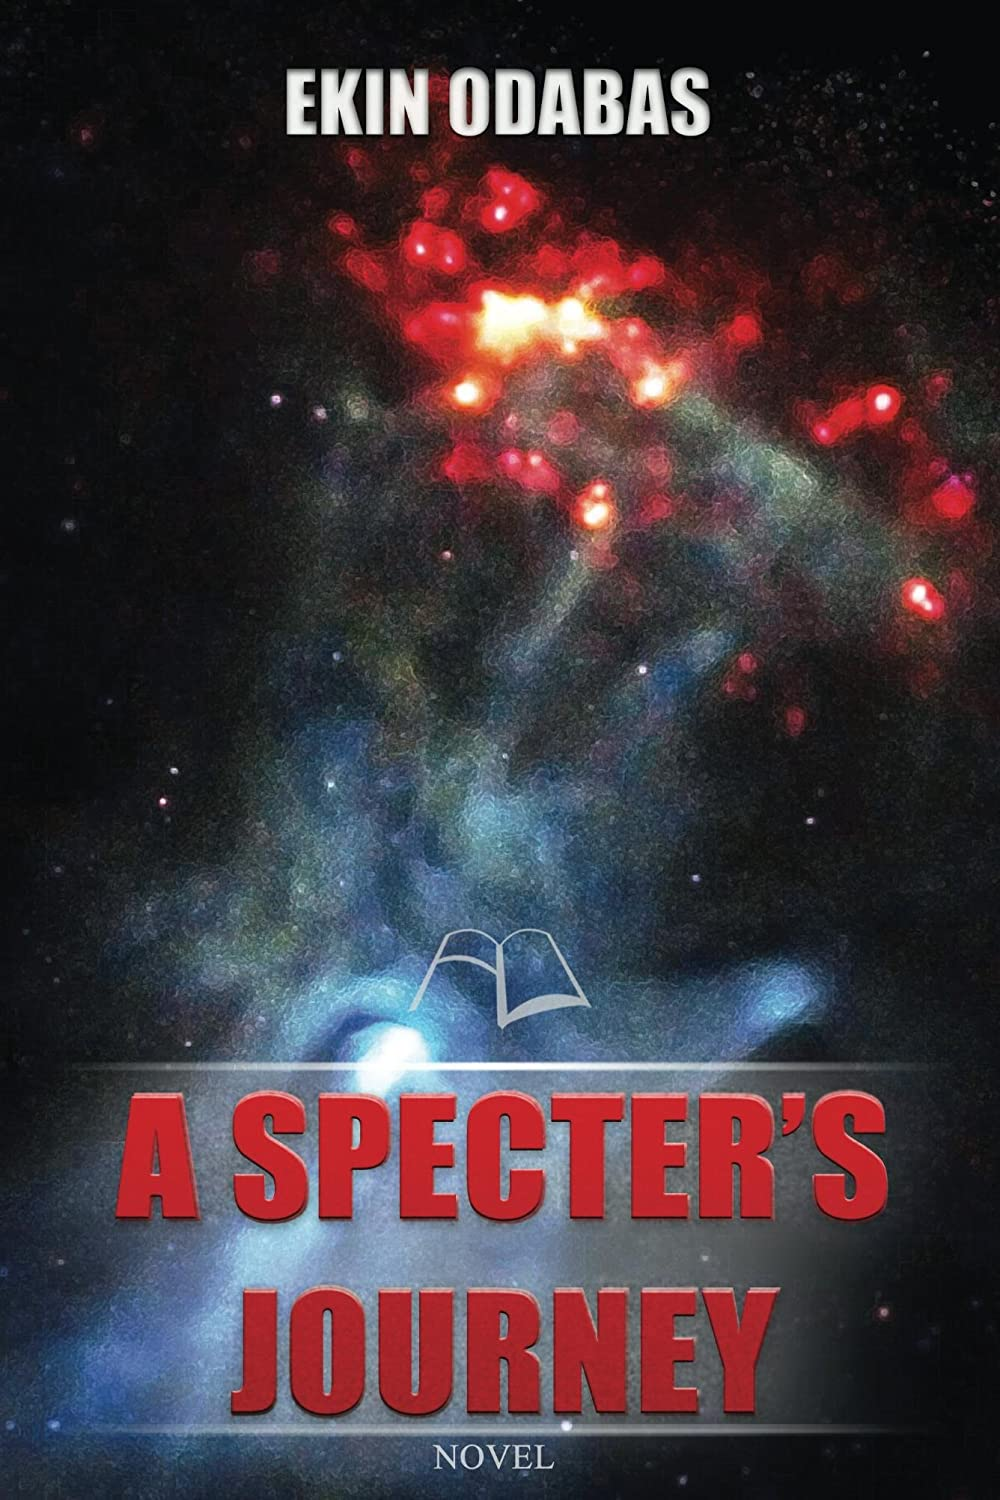 A_Specters_Journey_Cover_for_Kindle